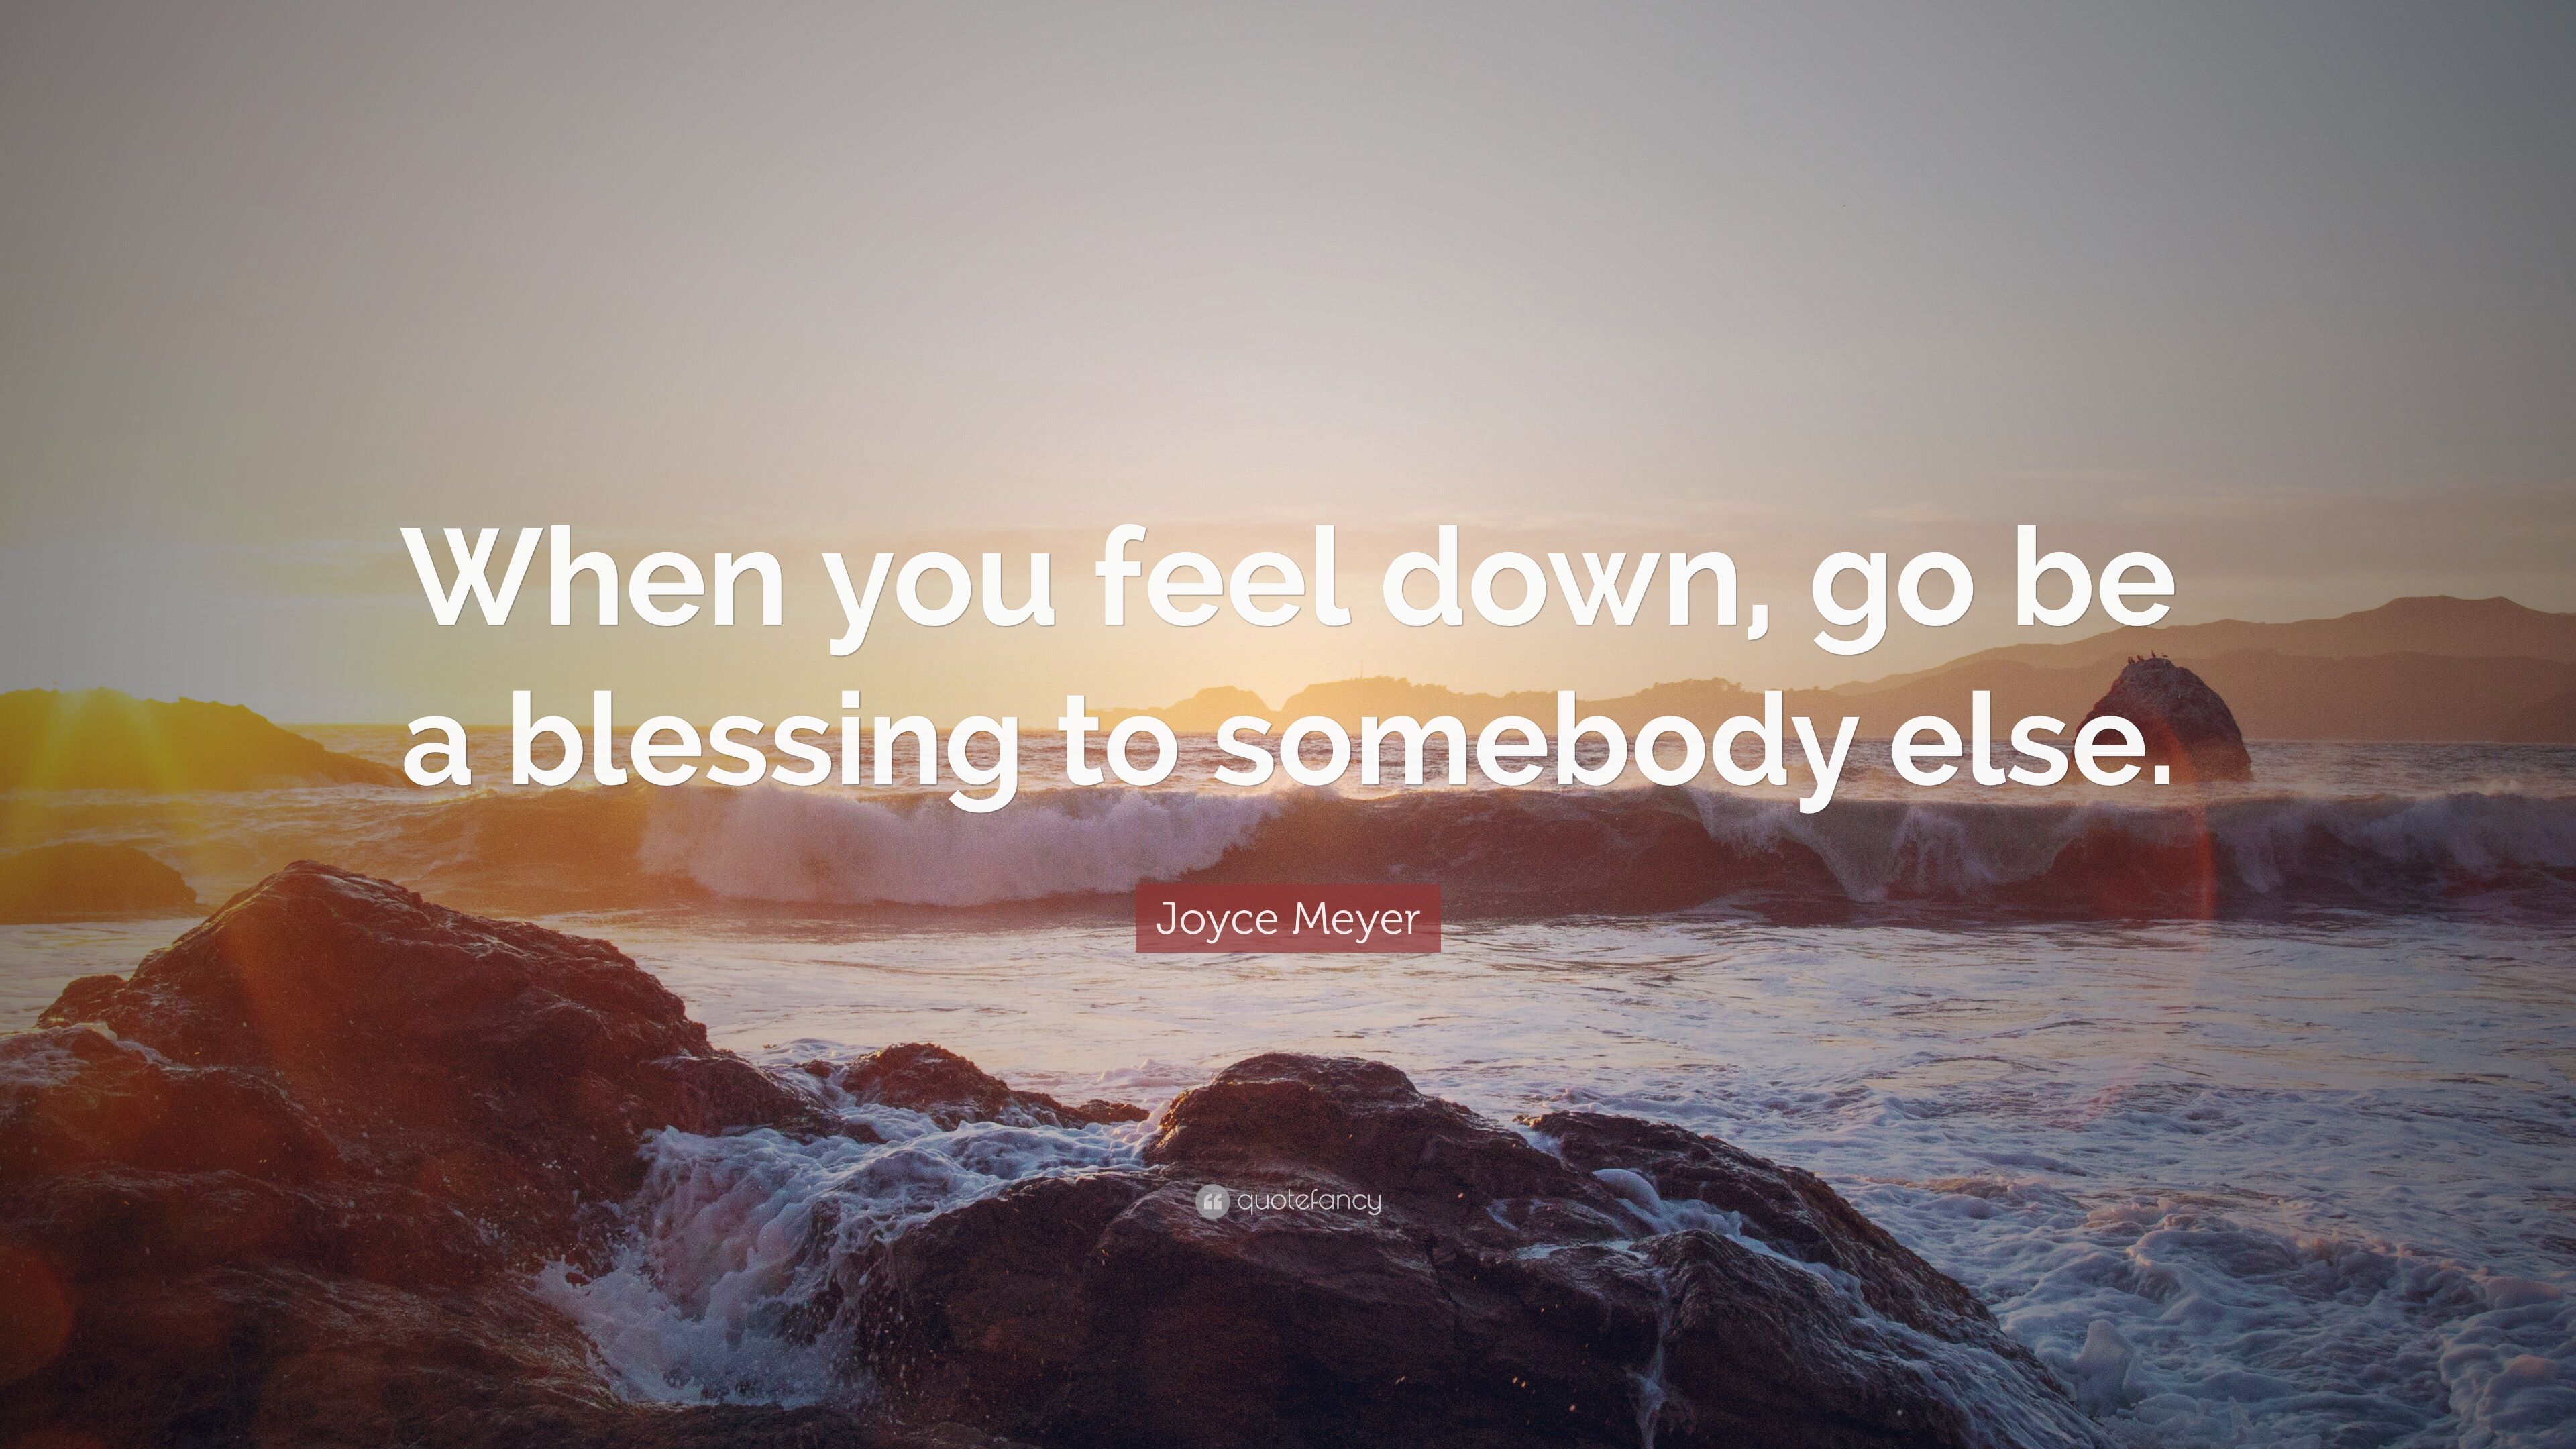 Joyce Meyer Quote When You Feel Down Go Be A Blessing To Somebody